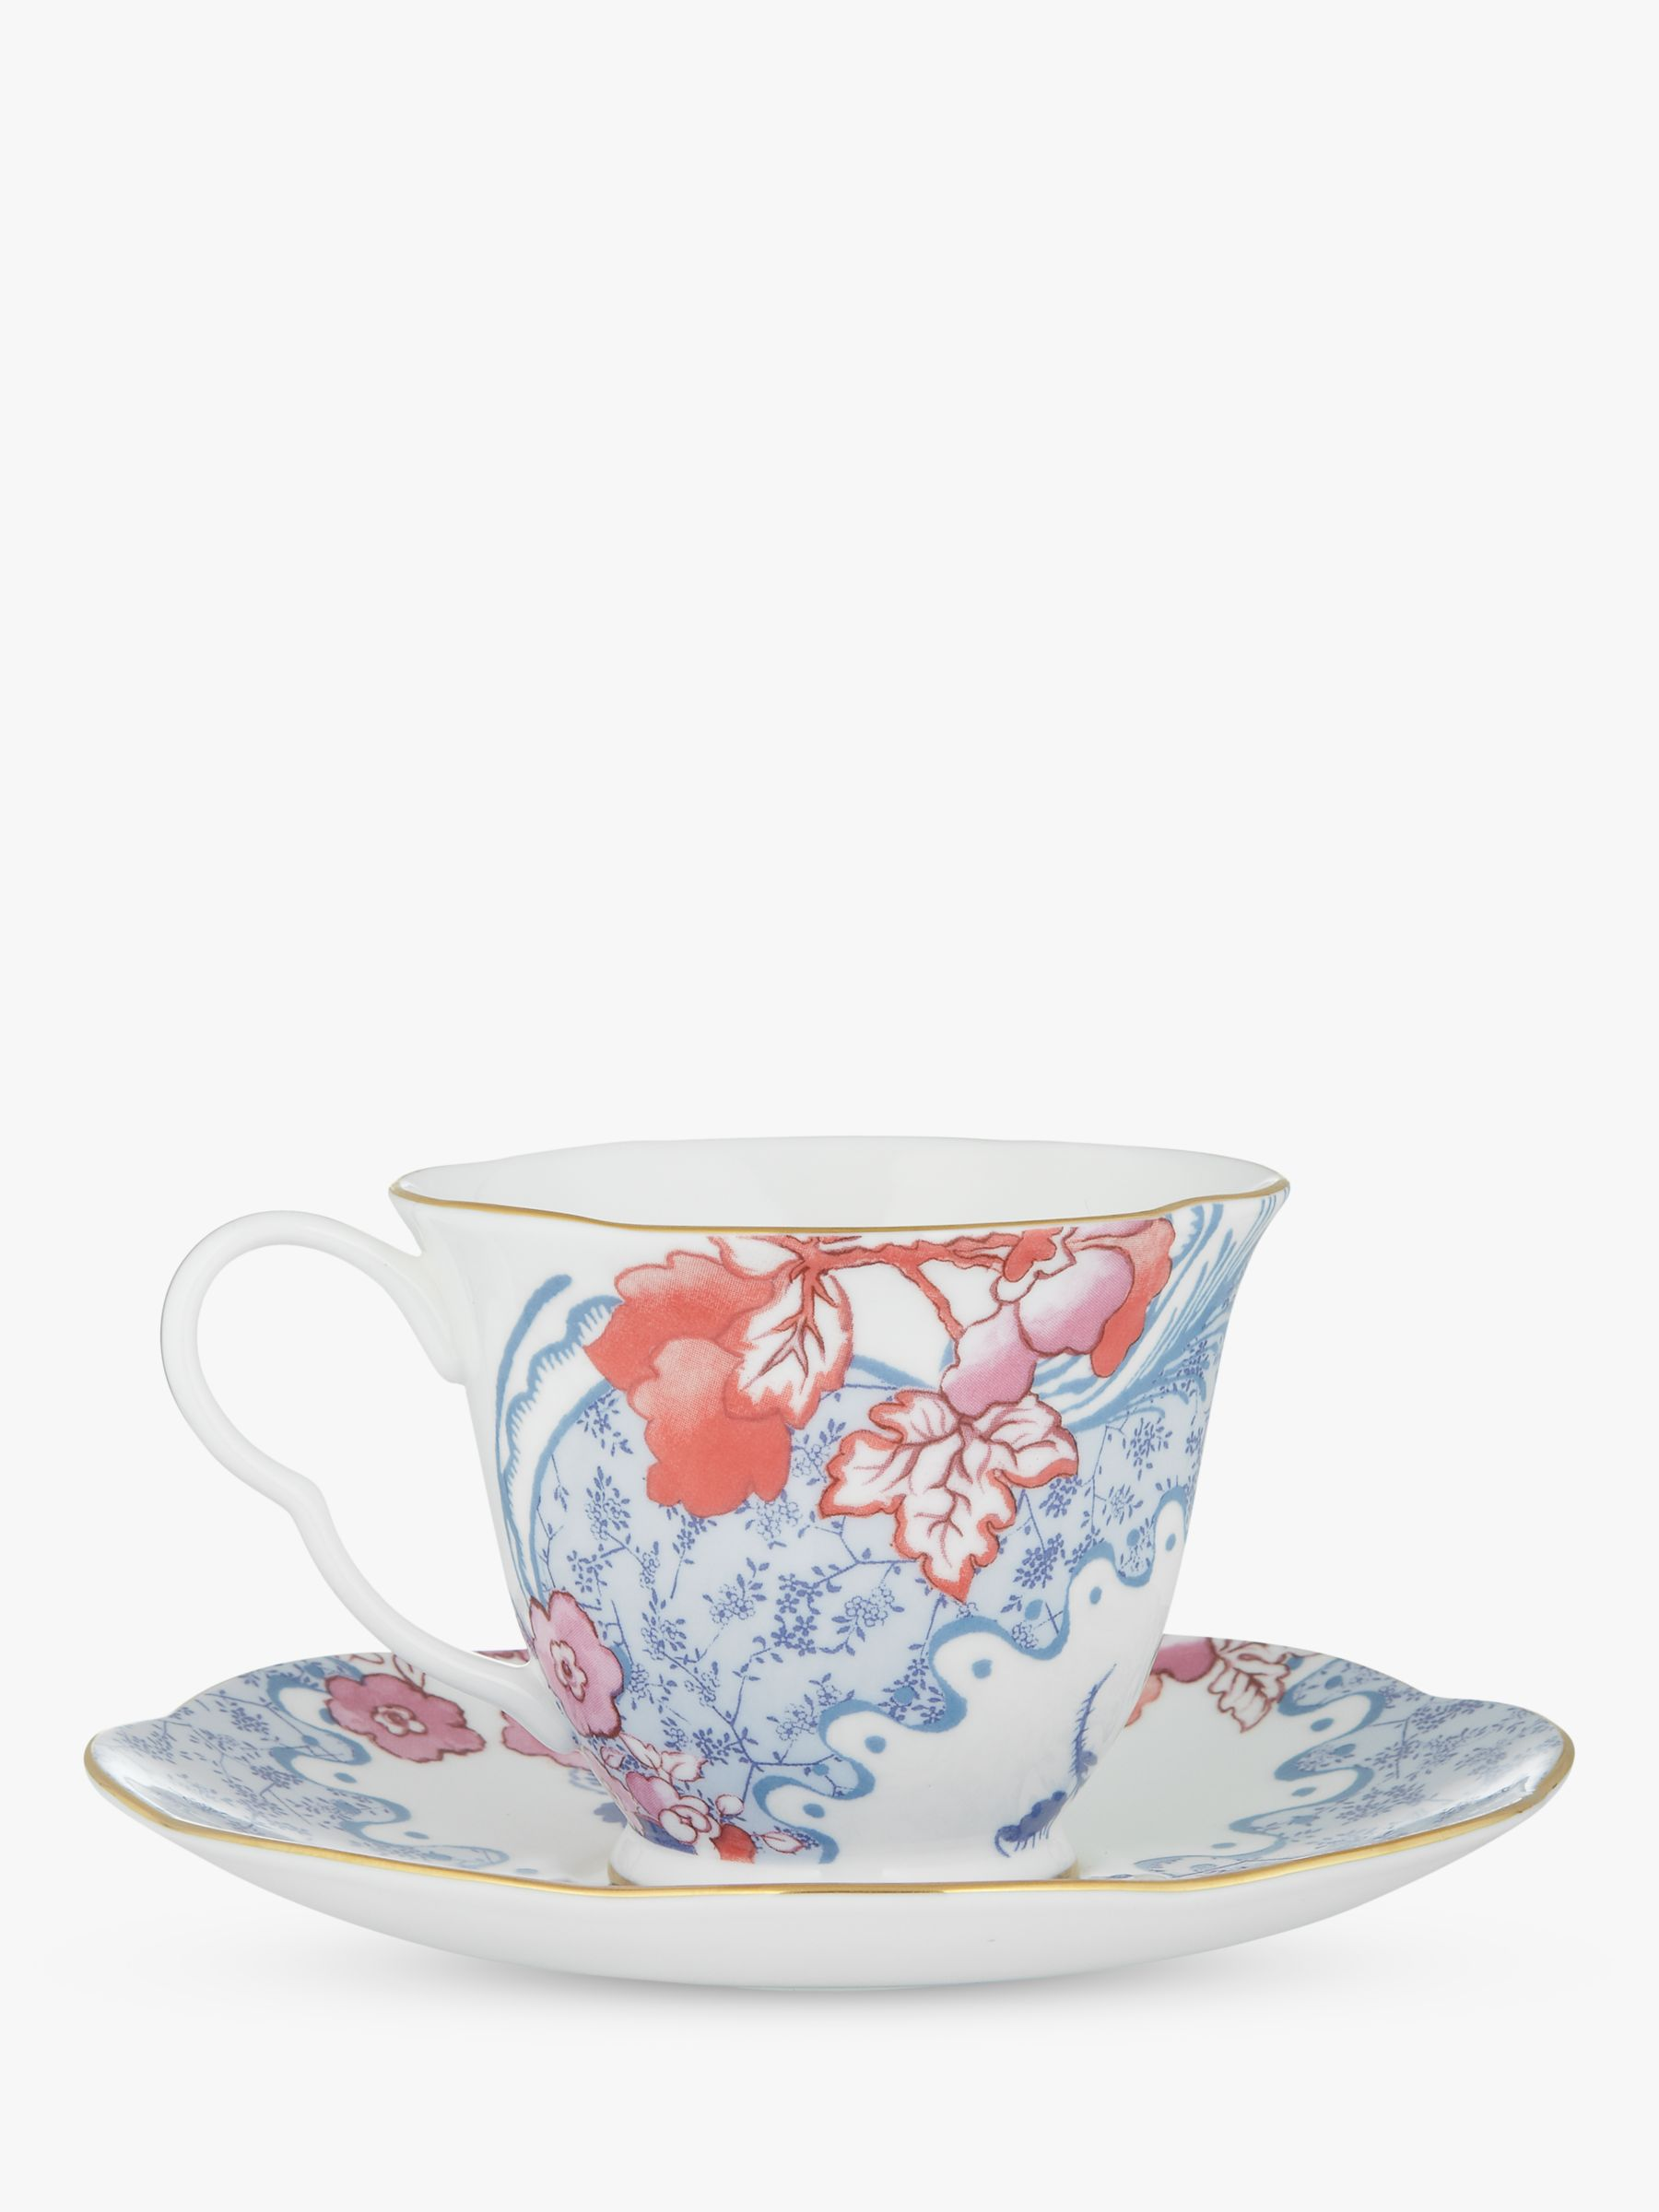 Wedgwood Wedgwood Butterfly Bloom Cup and Saucer Set, Pink/Blue